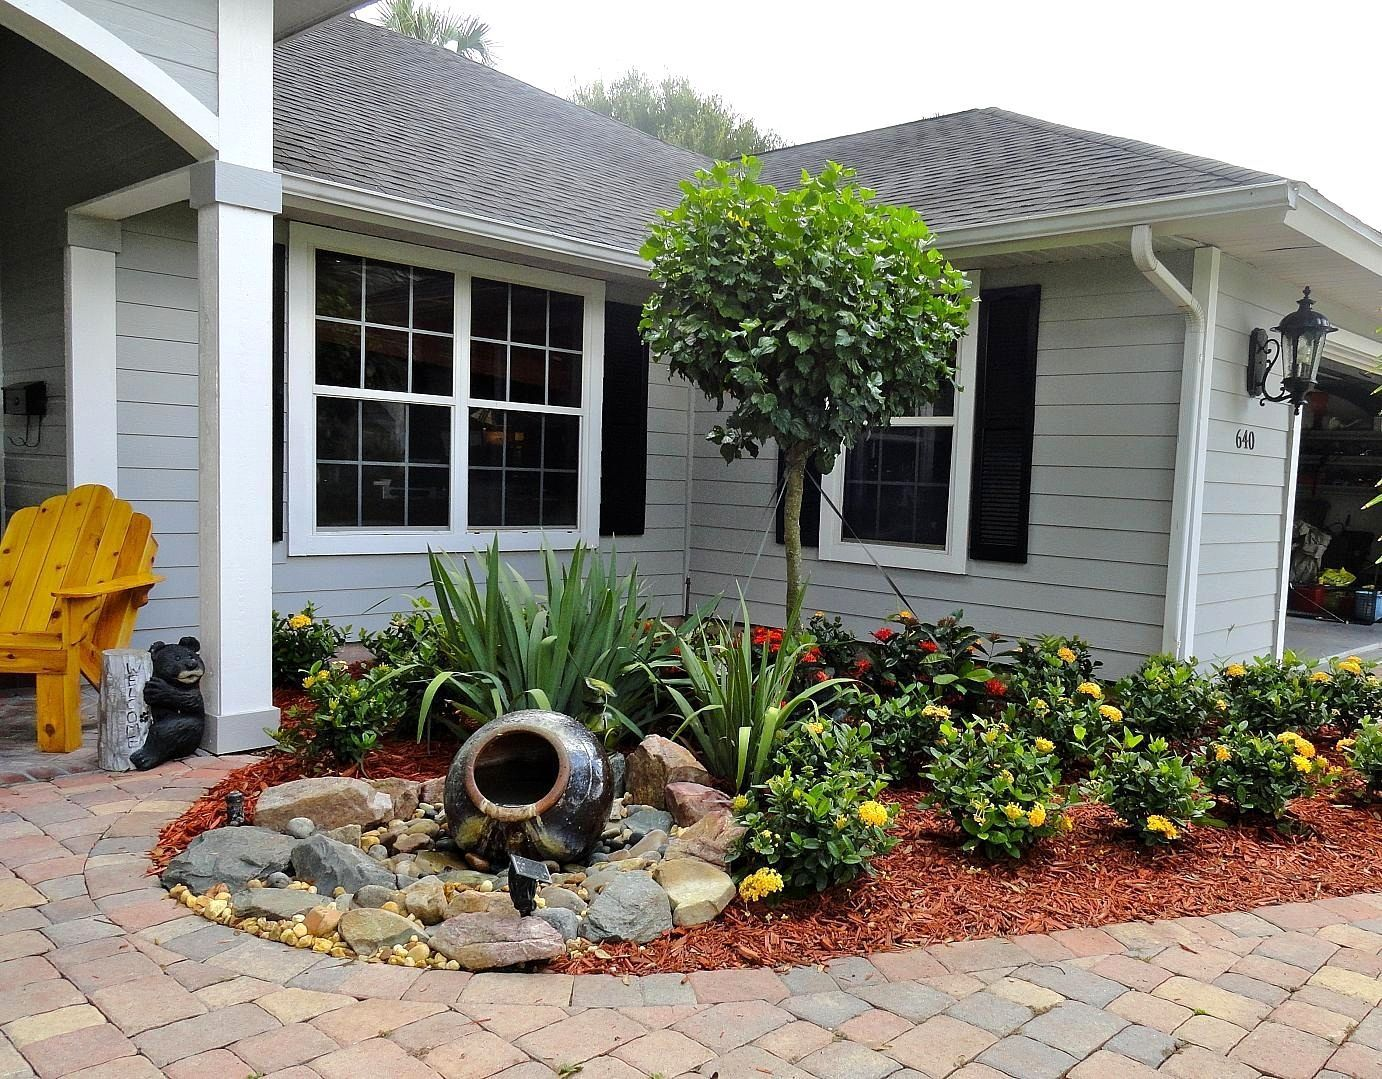 Ideas For Front Yard Landscaping Without Grass - http ...